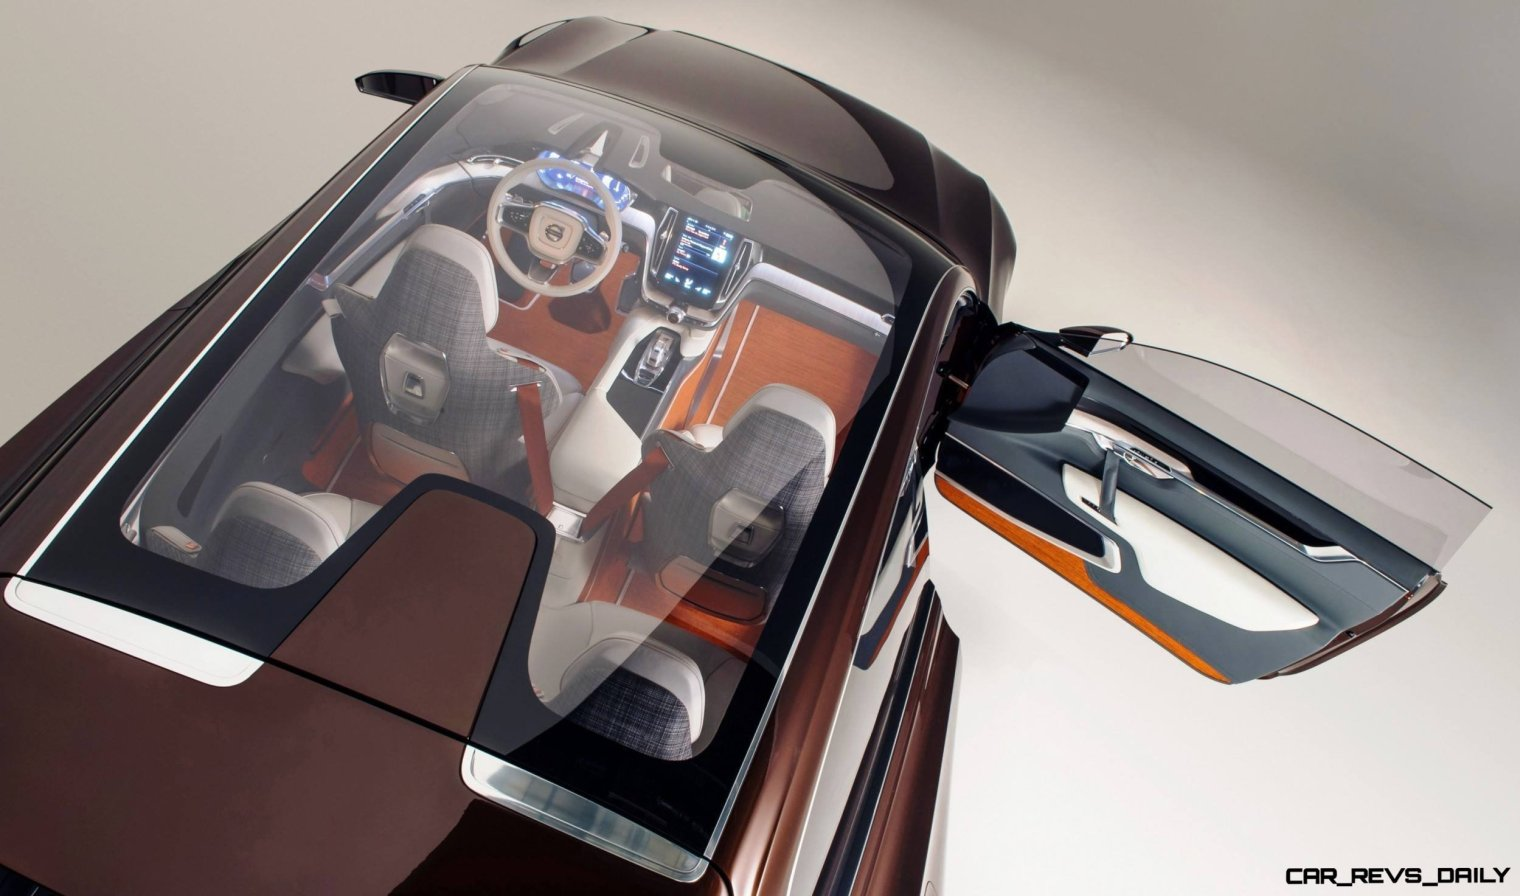 Concept Estate Confirms It! Volvo's New Design Lead Th. Ingenlath Should Be Sweden's Man of the Year 19